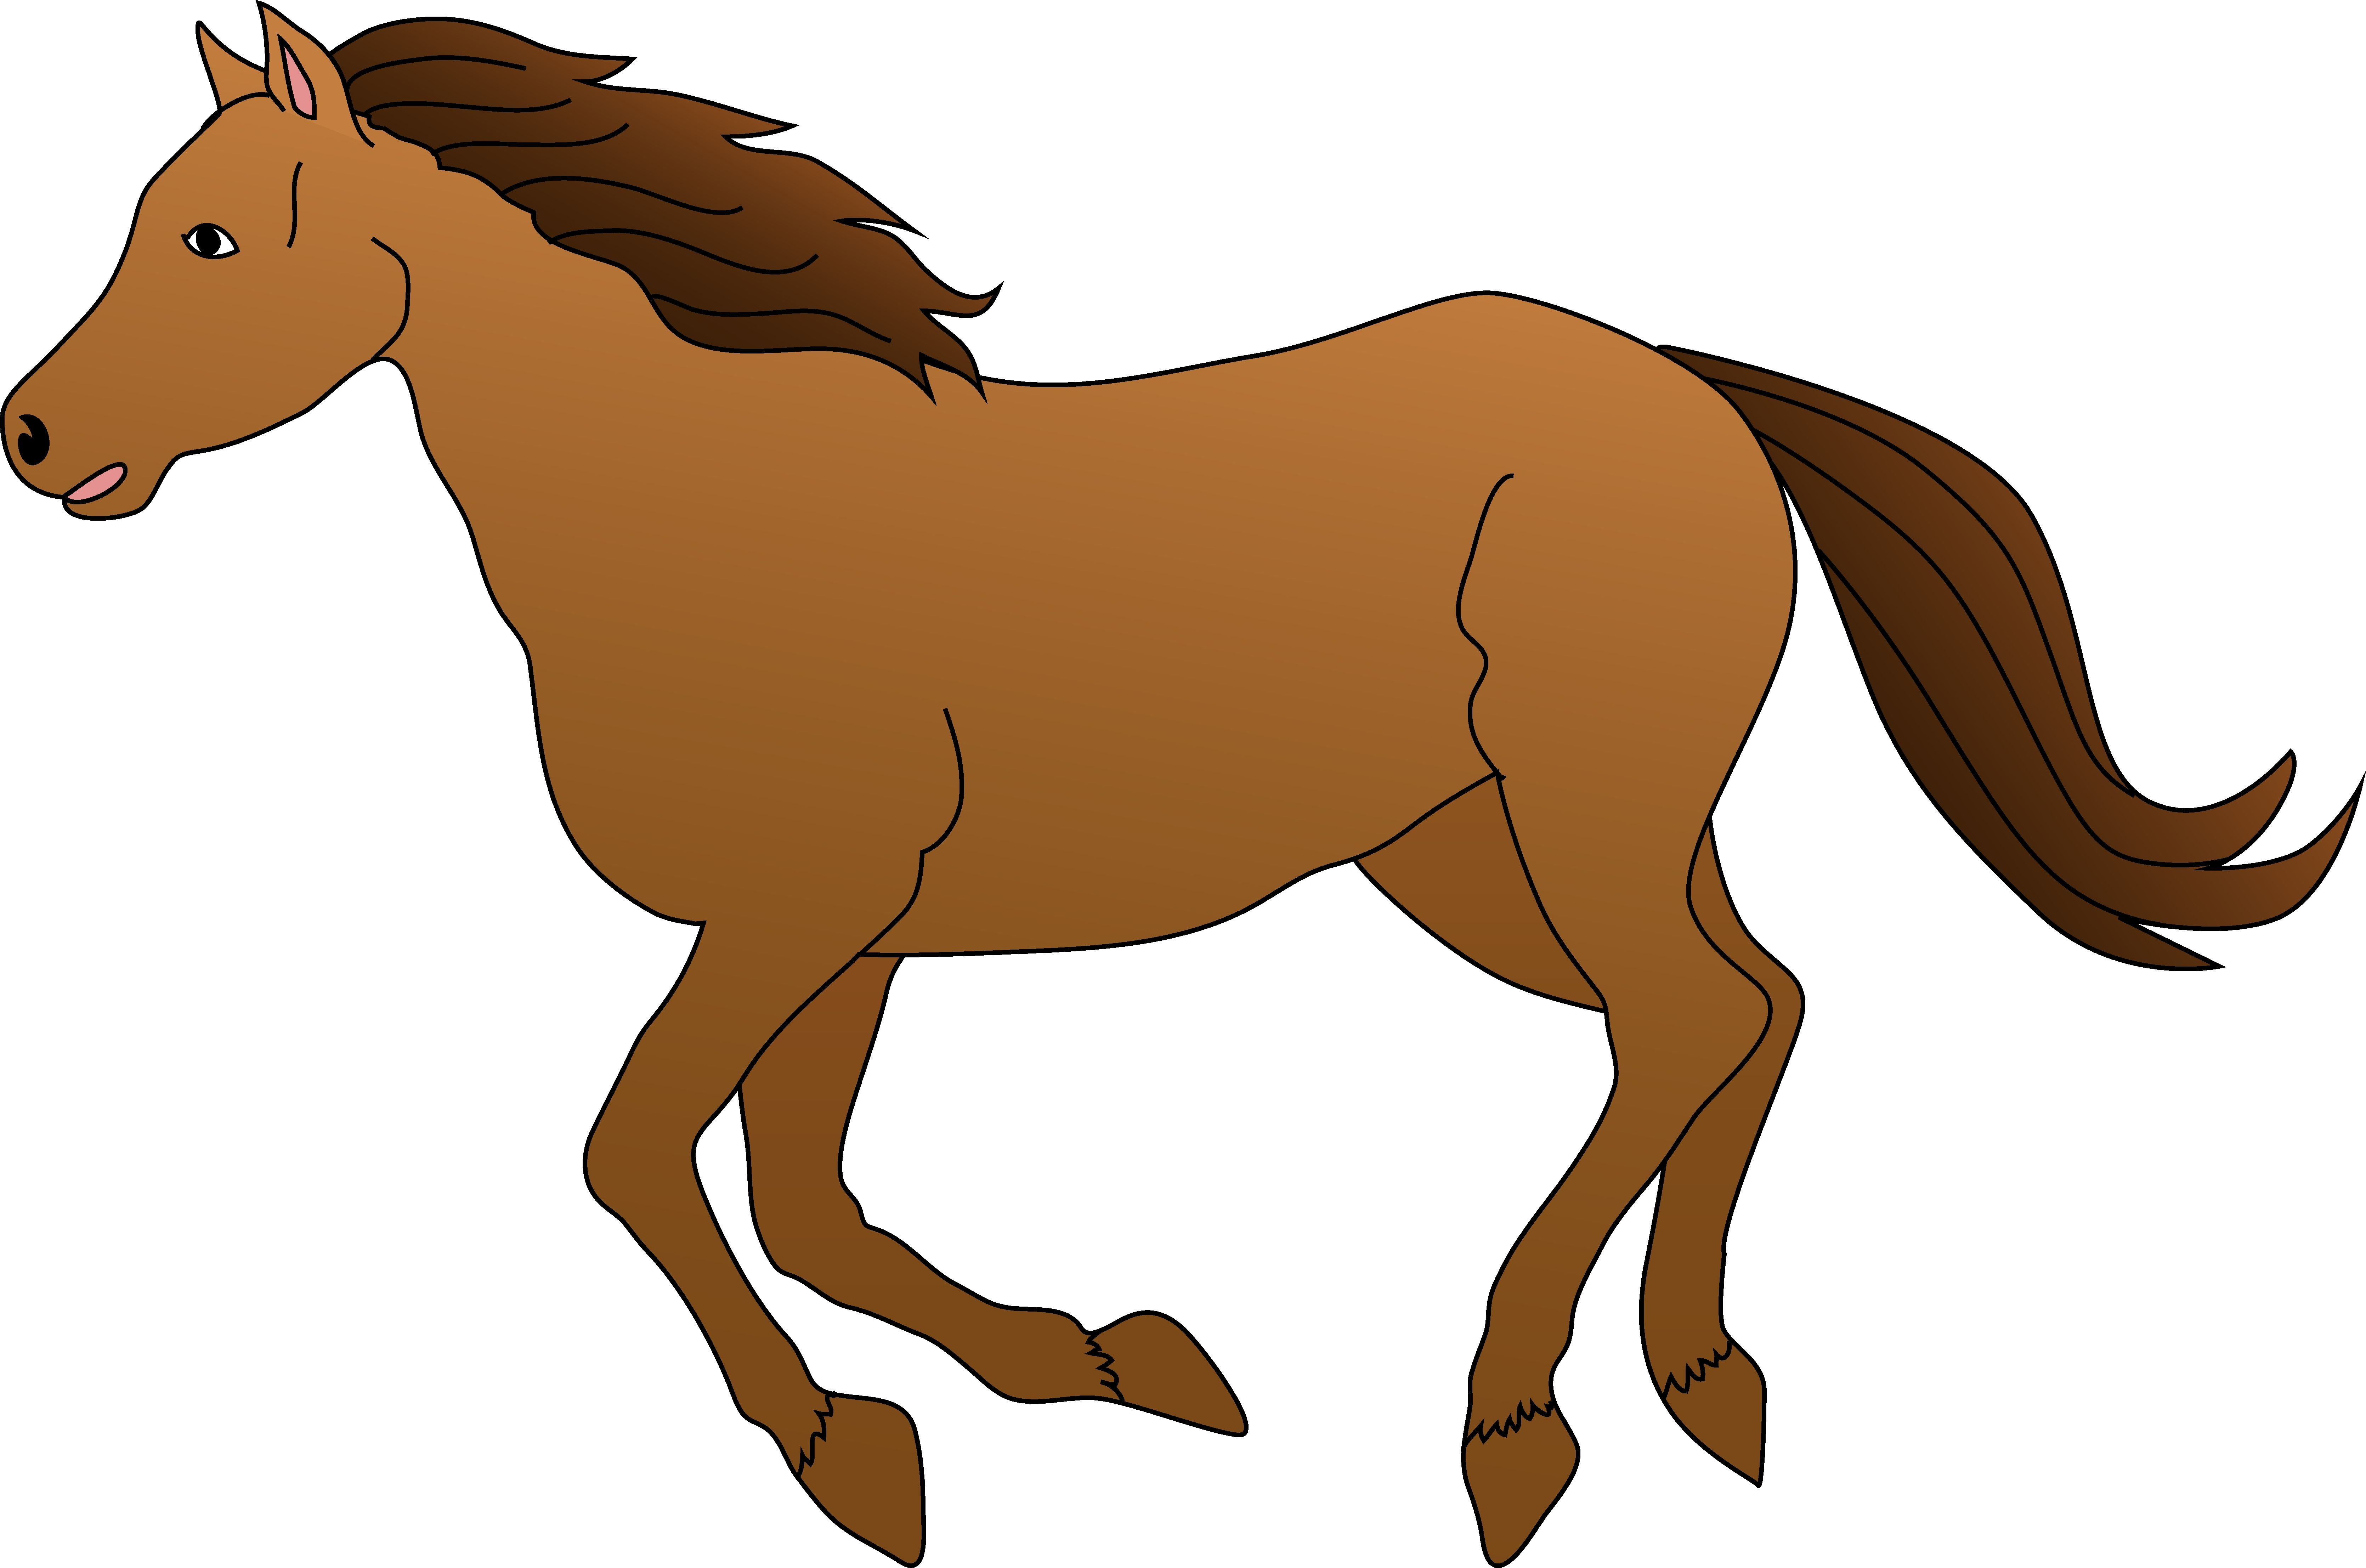 Halloween Horse Clipart At Getdrawings Free For Personal Use Inside.